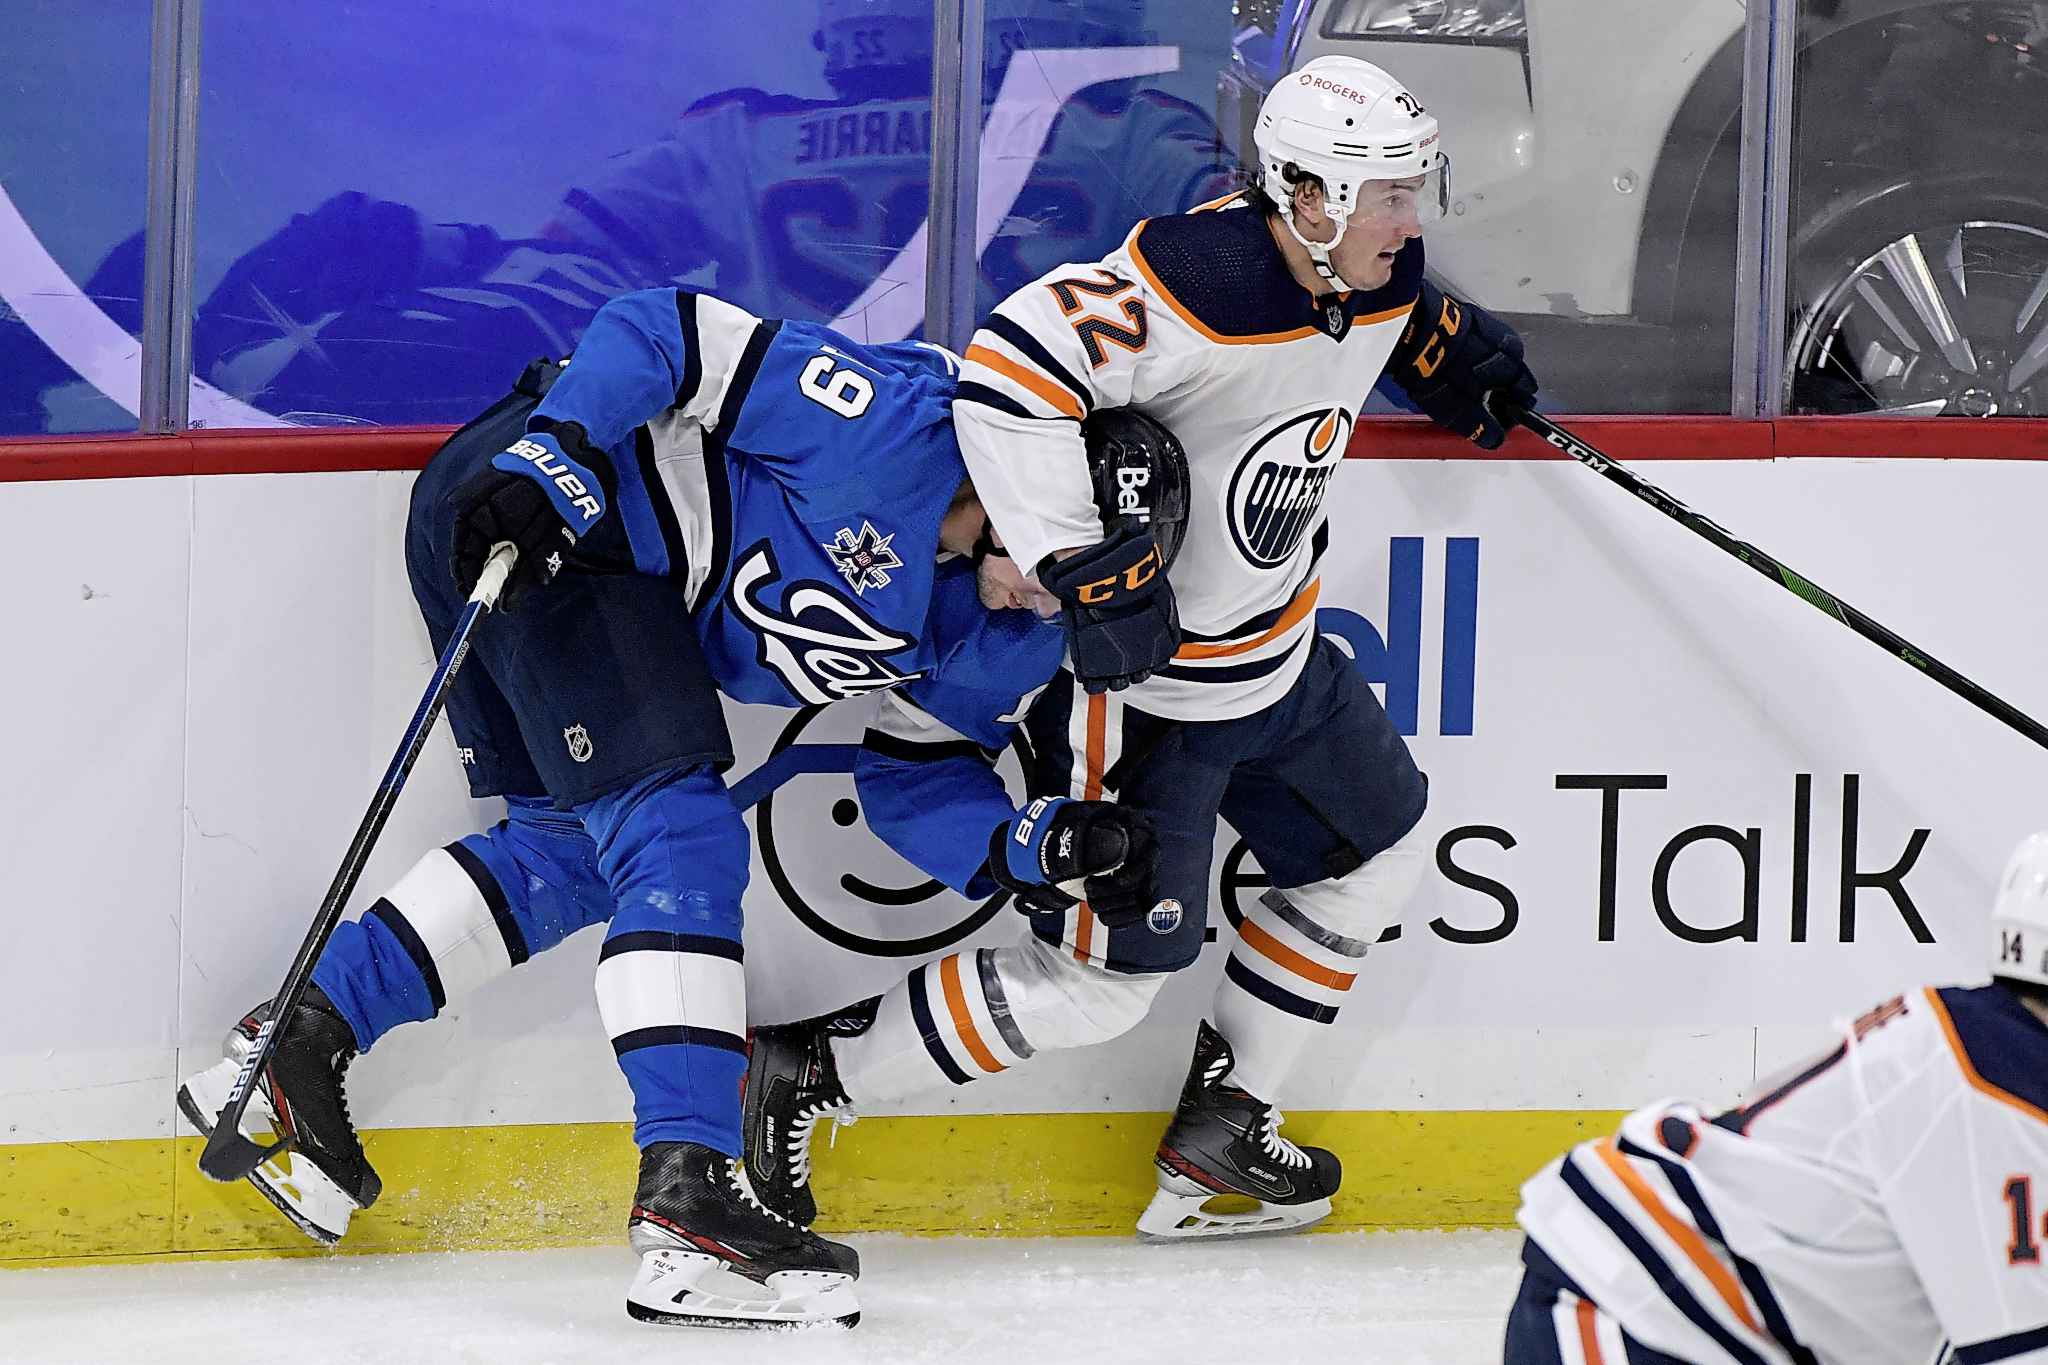 Winnipeg Jets' David Gustafsson (19) is checked by Edmonton Oilers' Tyson Barrie (22) during the first period. (Fred Greenslade / The Canadian Press)